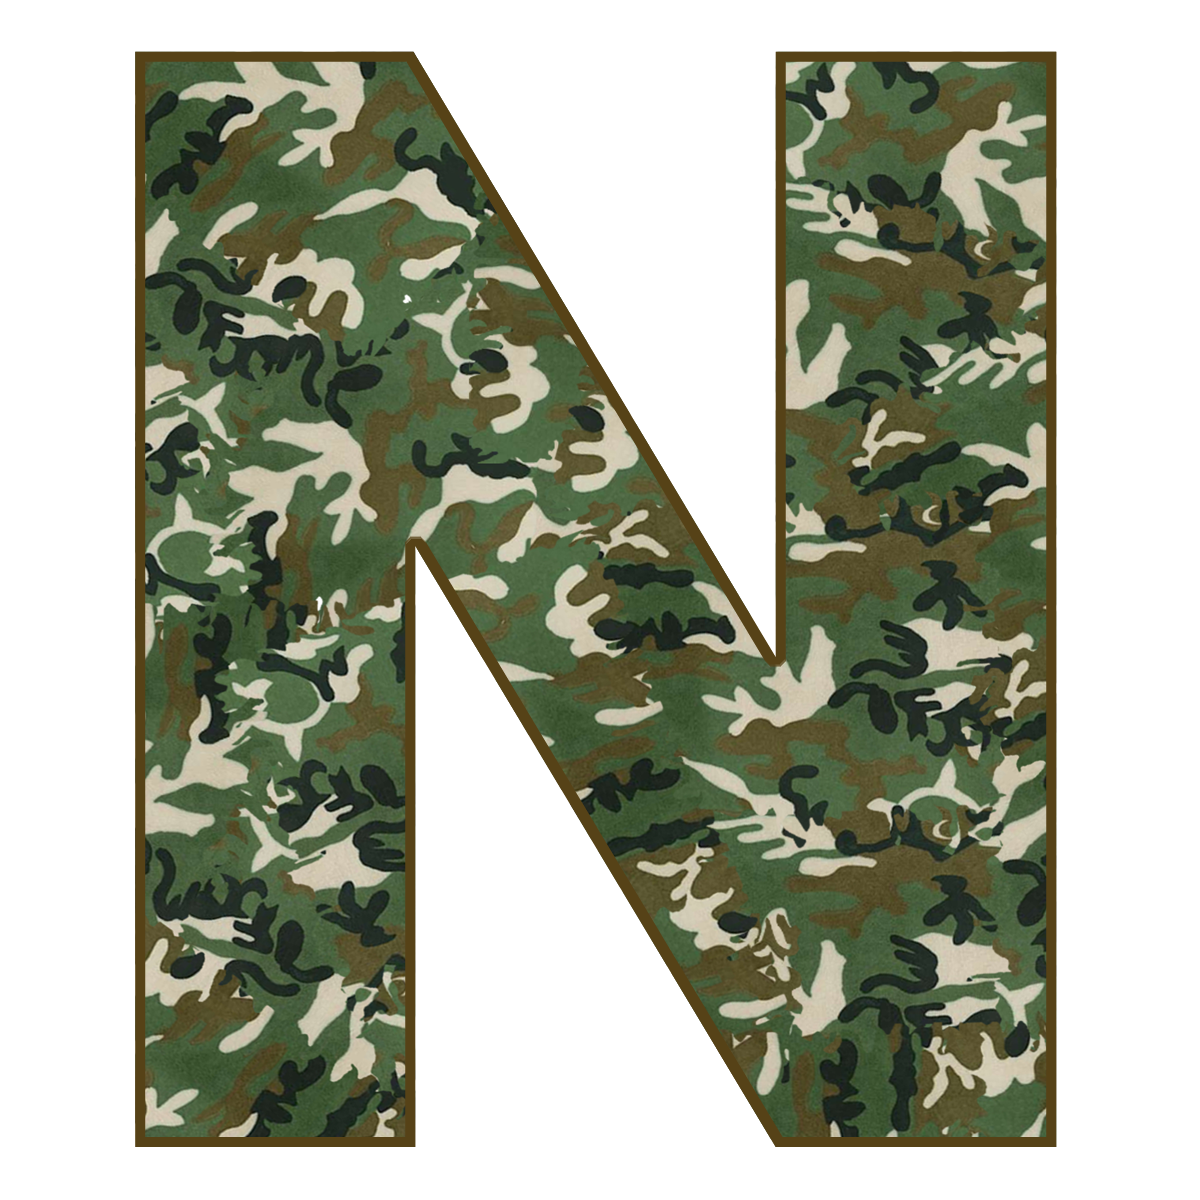 CAPITAL-LETTER-N-FREE.png (1200×1200)